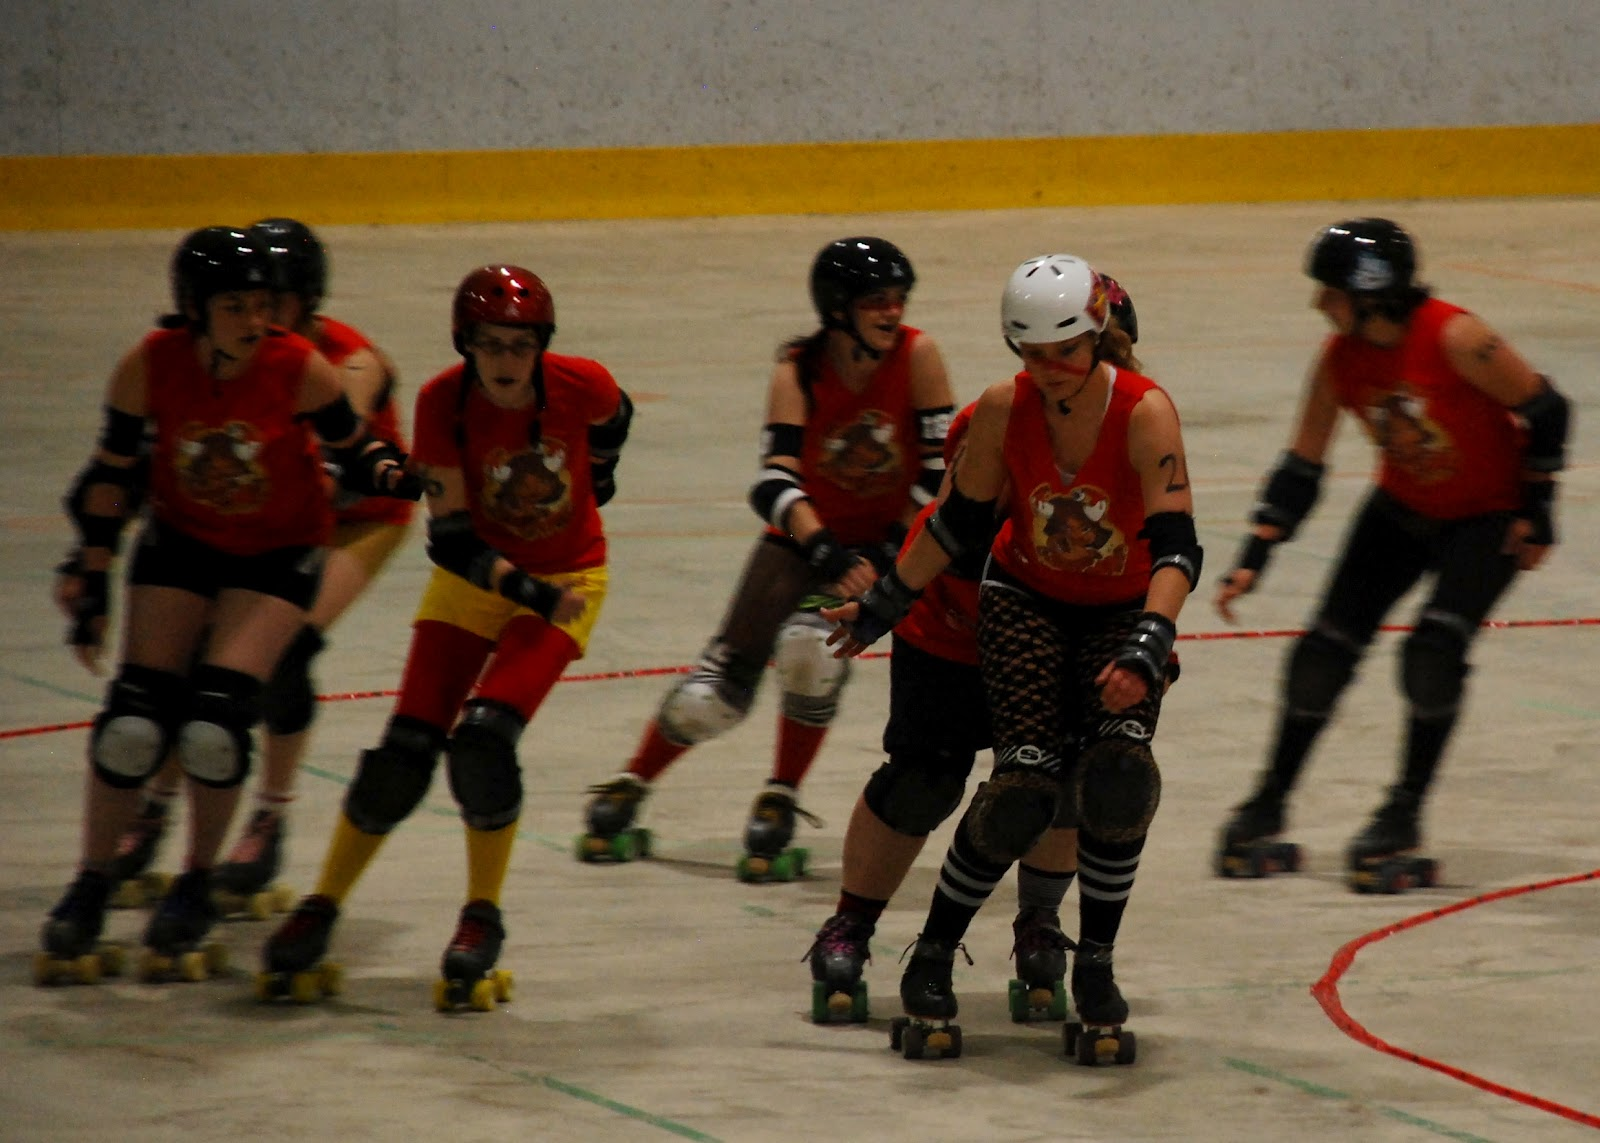 Roller skating quebec city - Ewen In The White Helmet Regularly Plays As The Jammer The Player On Each Team Able To Score Points By Passing All Five Players On The Other Team